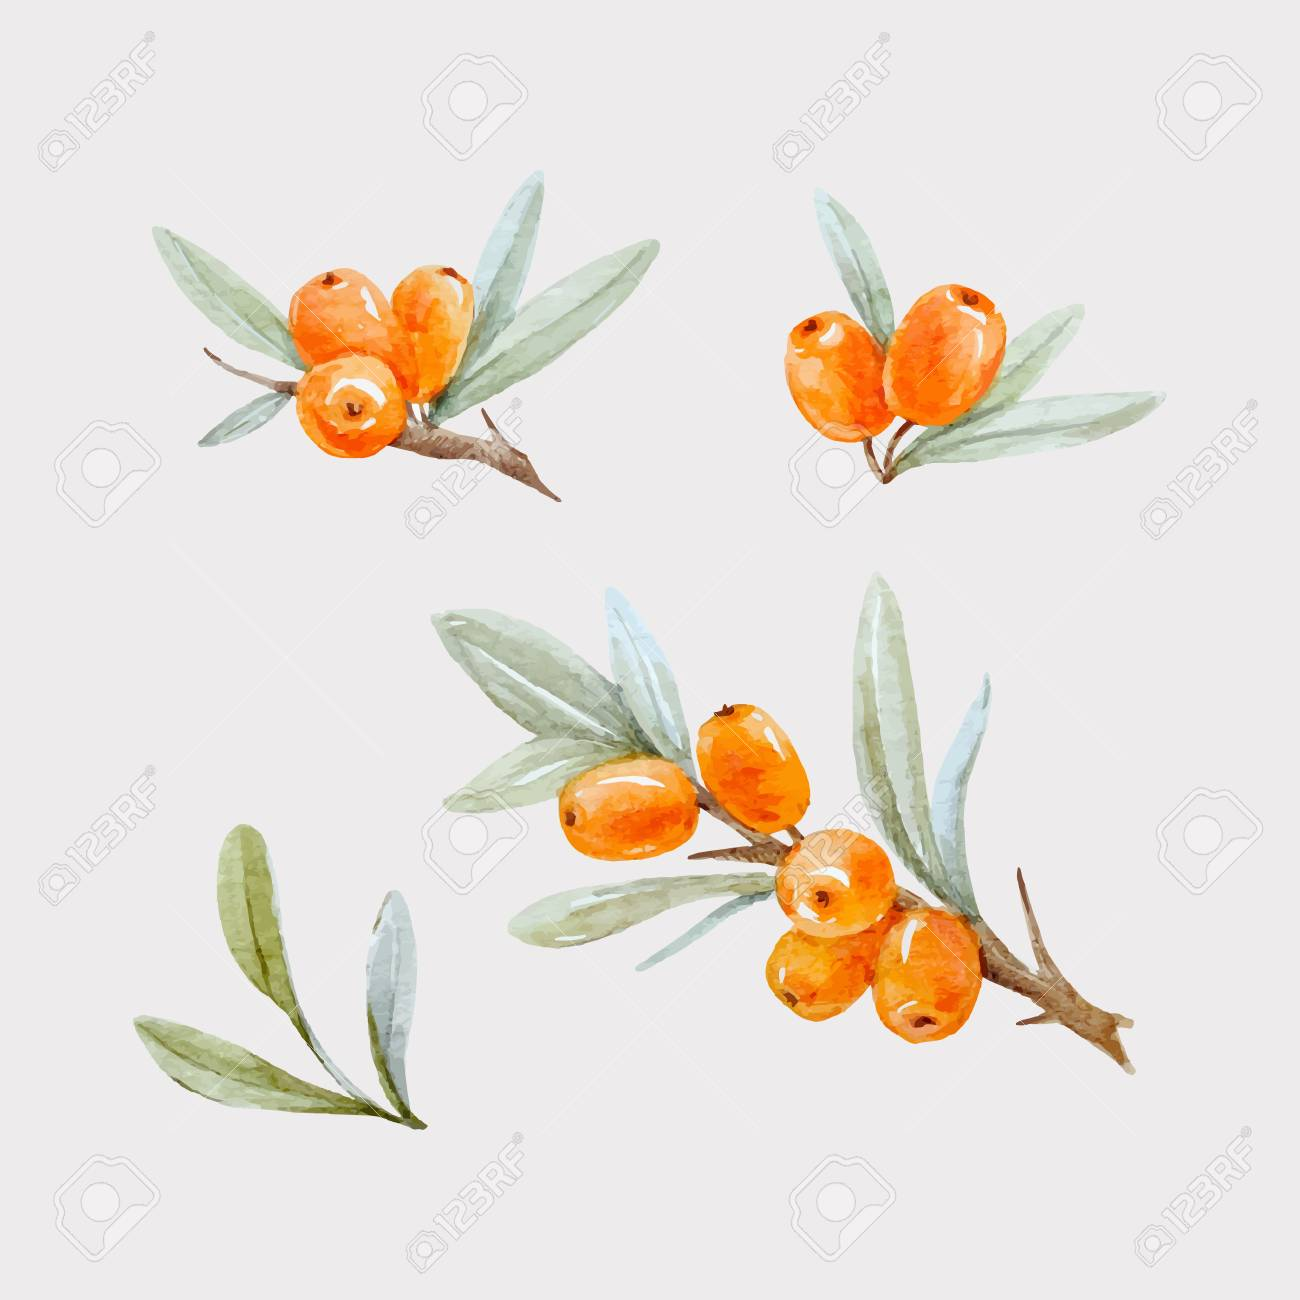 Beautiful watercolor vector illustration of sea buckthorn berries with leaves on transparent background - 81376448